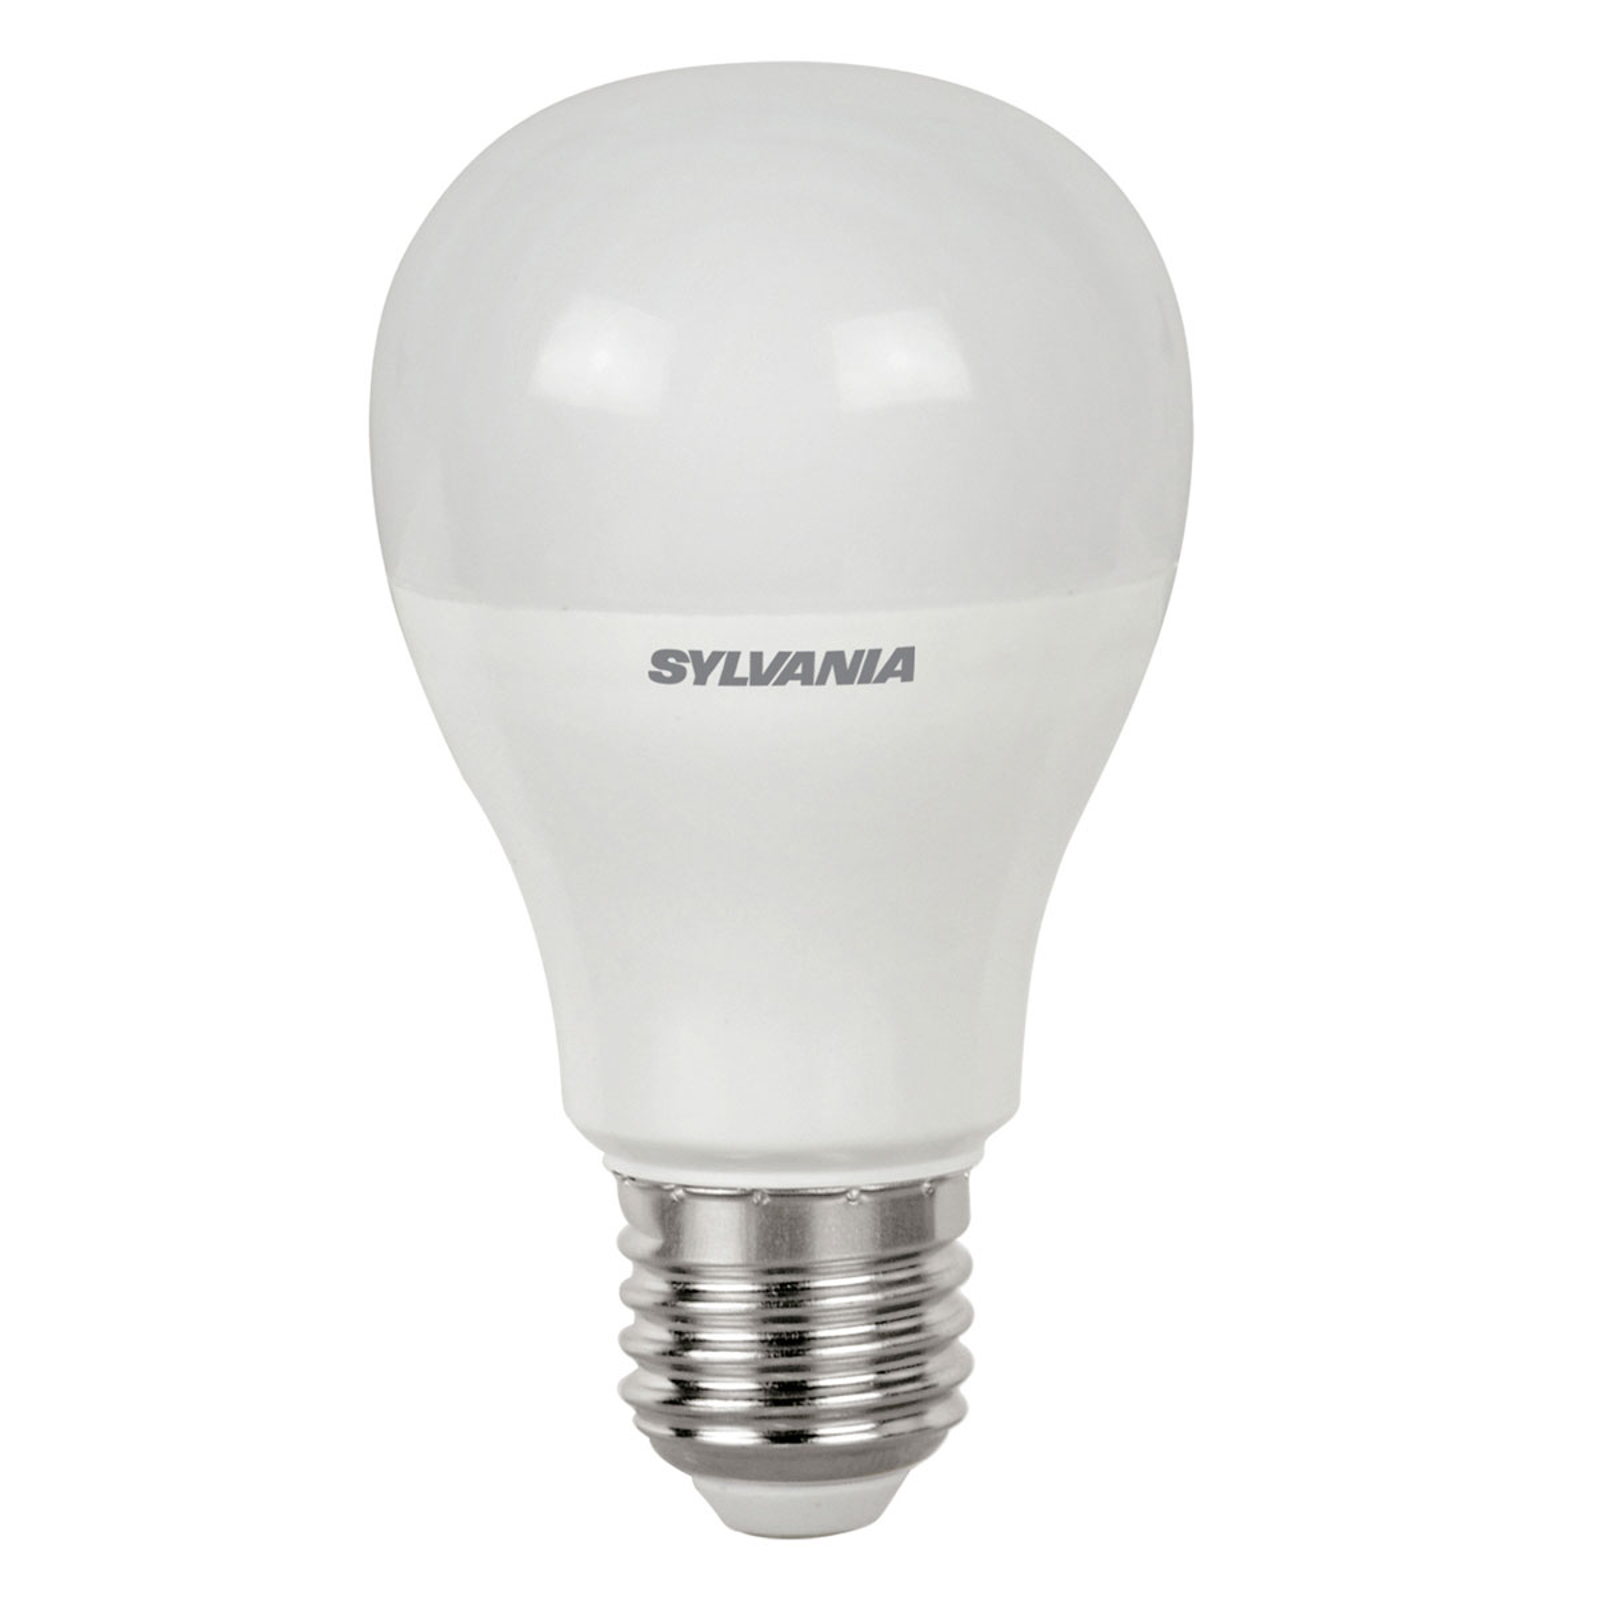 Acquista Lampadina a LED E27 865 satinata